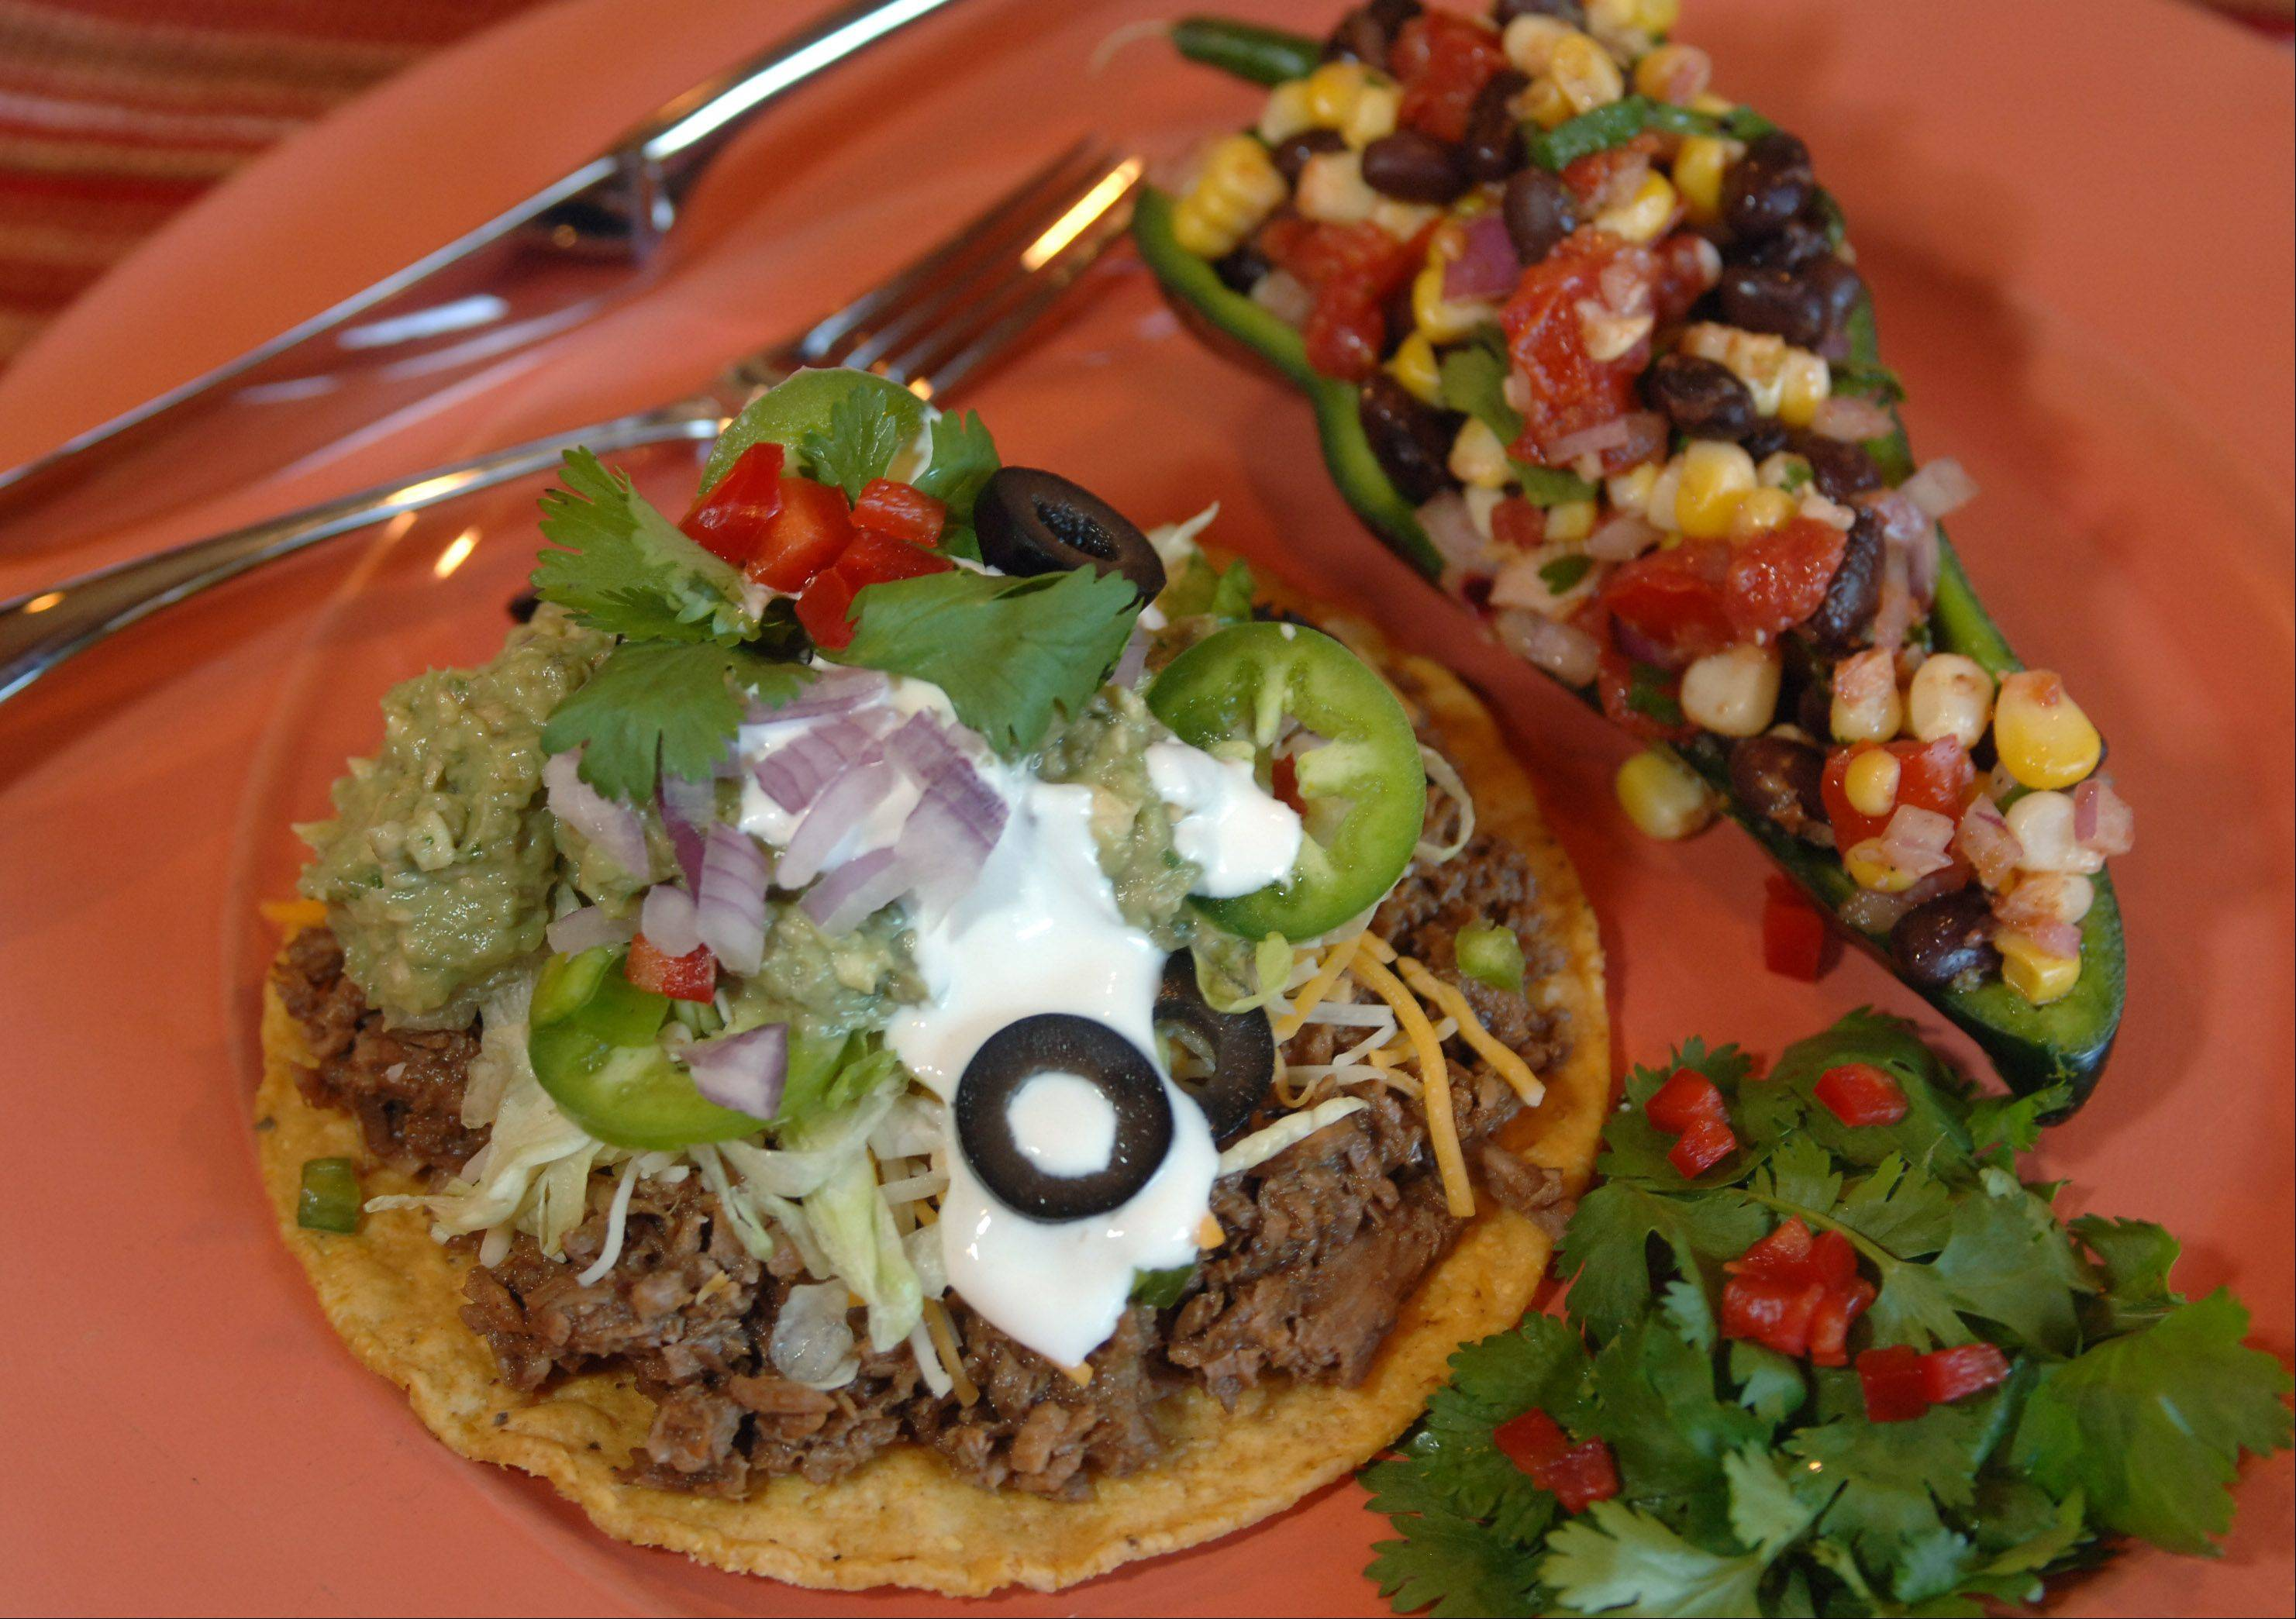 Mary Miske created shredded beef tostadas with a grass-fed beef roast. She serves it with plantain guacamole and corn, tomato and black bean salad.